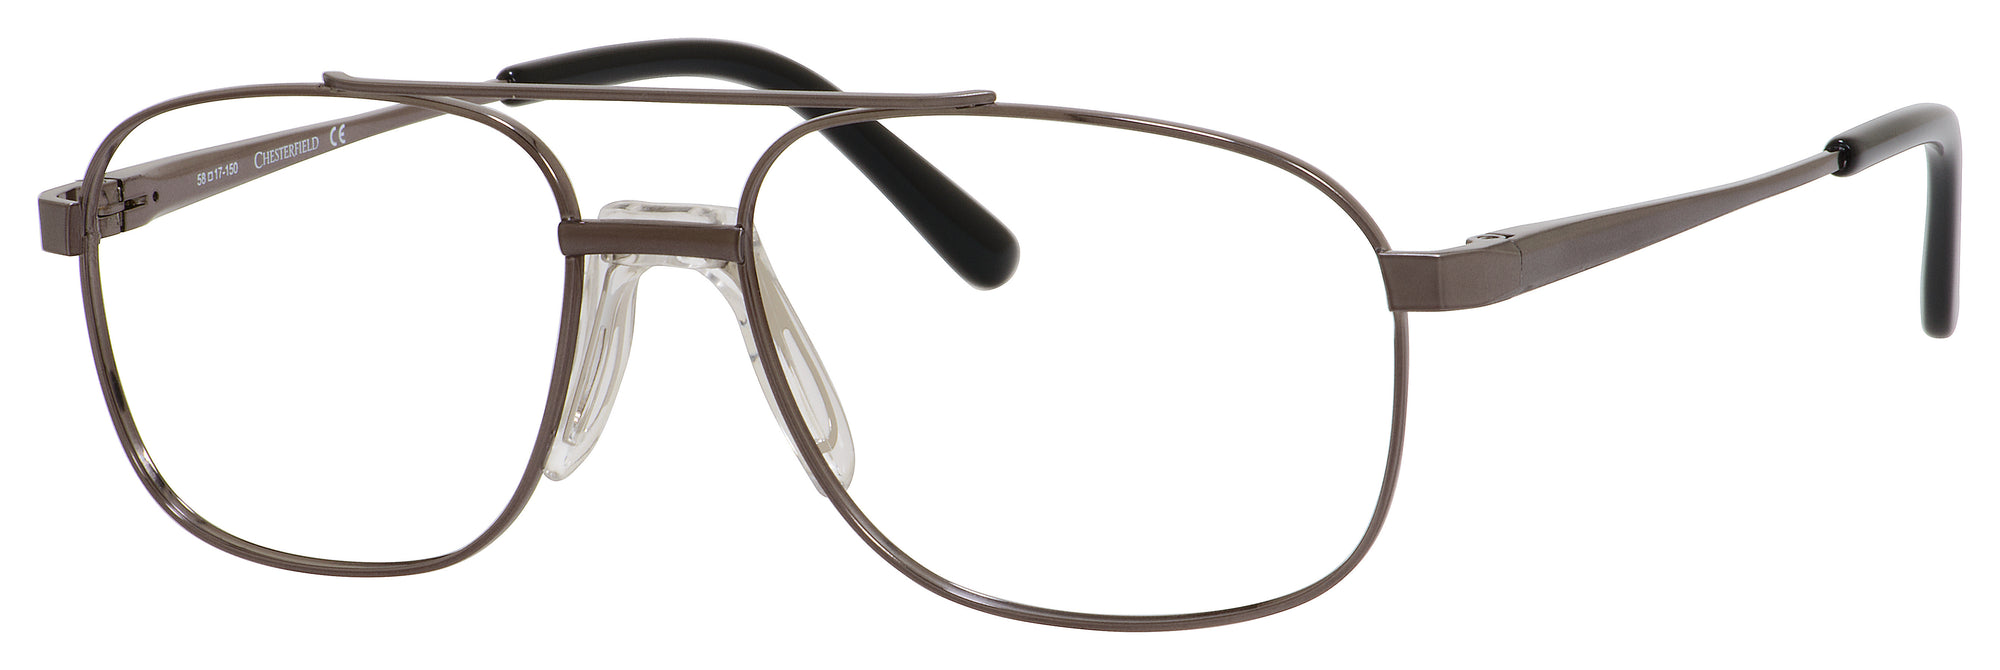 Chesterfield Chesterfield 868/T Aviator Eyeglasses 01P4-01P4  Ruthenium (00 Demo Lens)